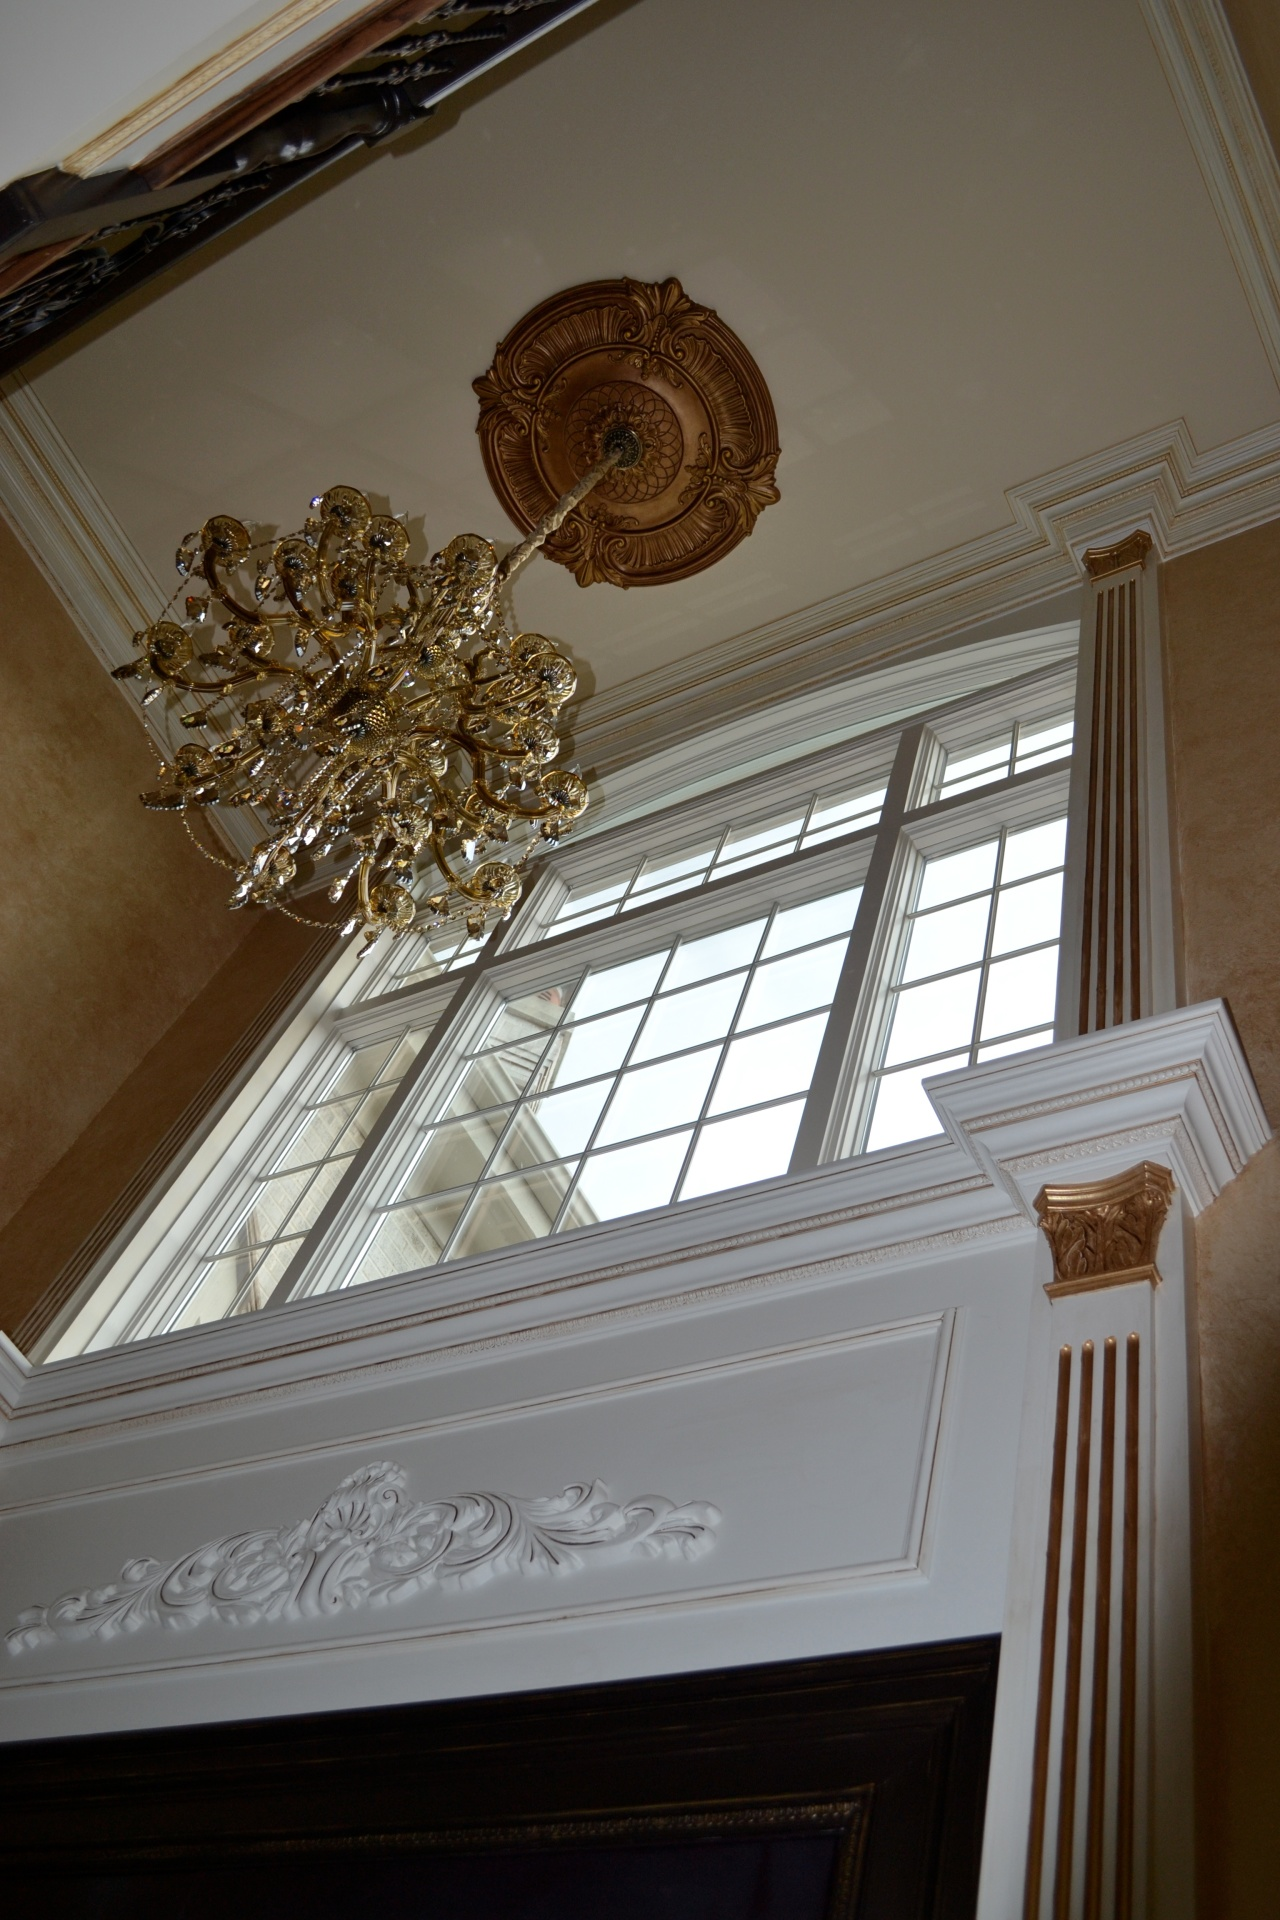 medallion, walls and crown moldings